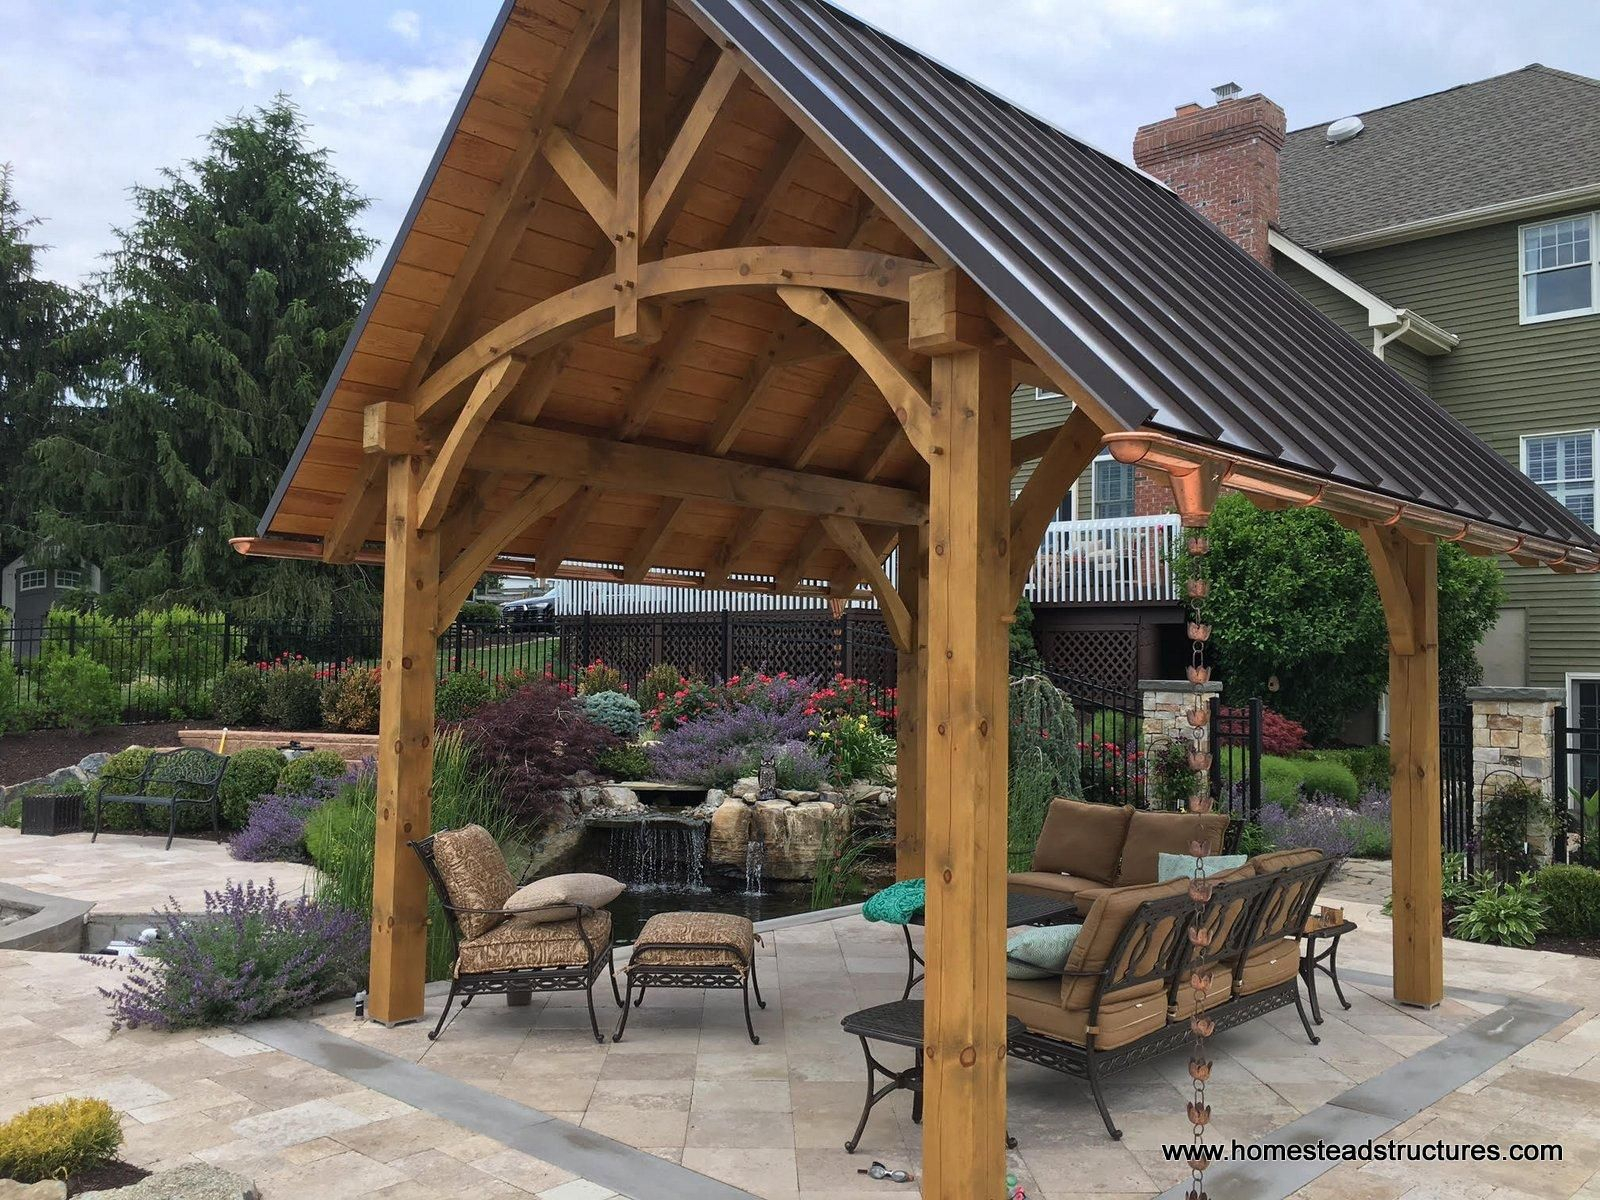 12 X 14 Timber Frame Pavilion With Standing Seam Metal with regard to proportions 1600 X 1200